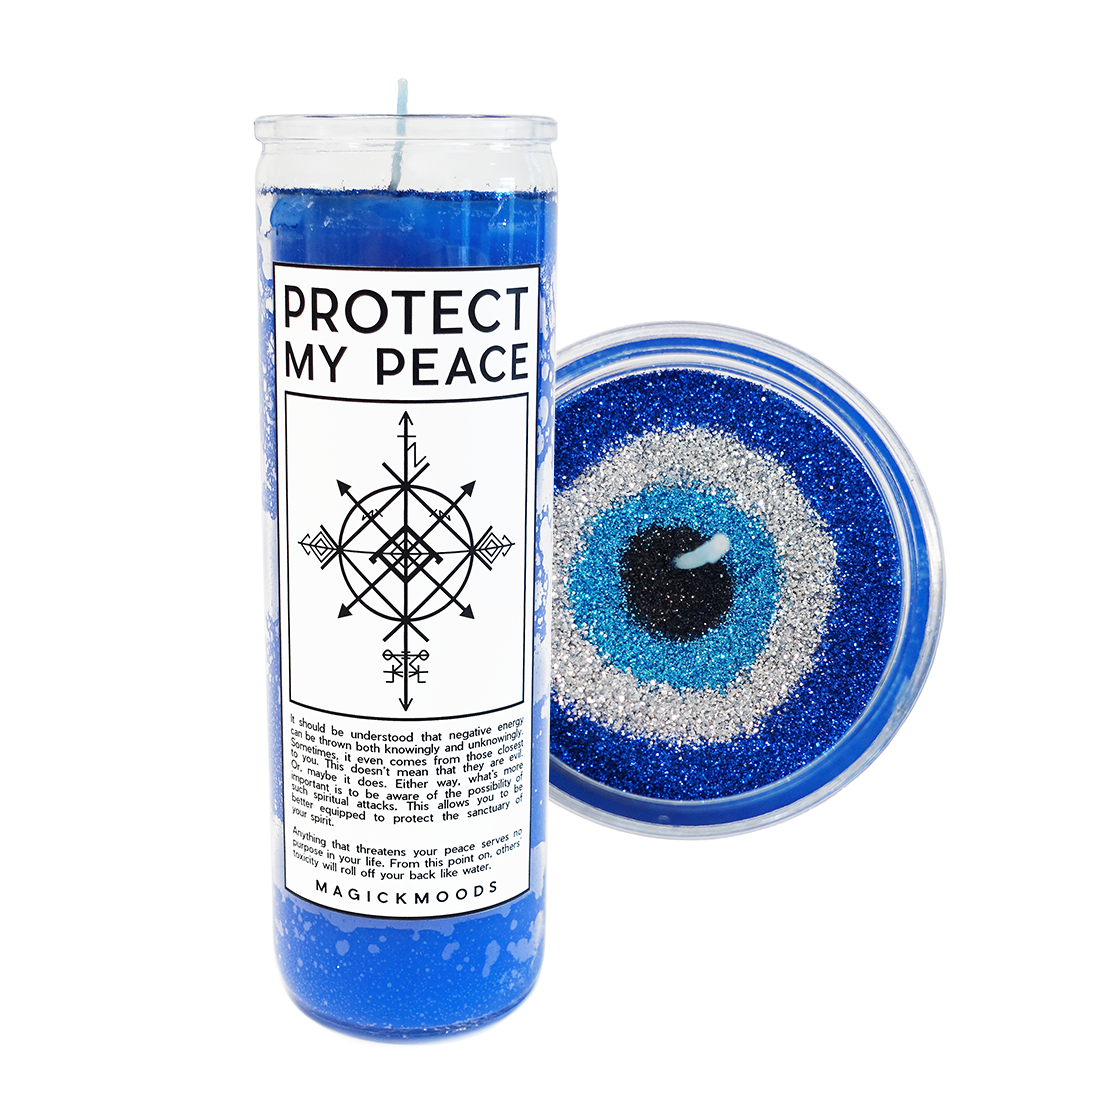 Protect My Peace 7-Day Meditation Candle - PREORDER- Ships by 12/15